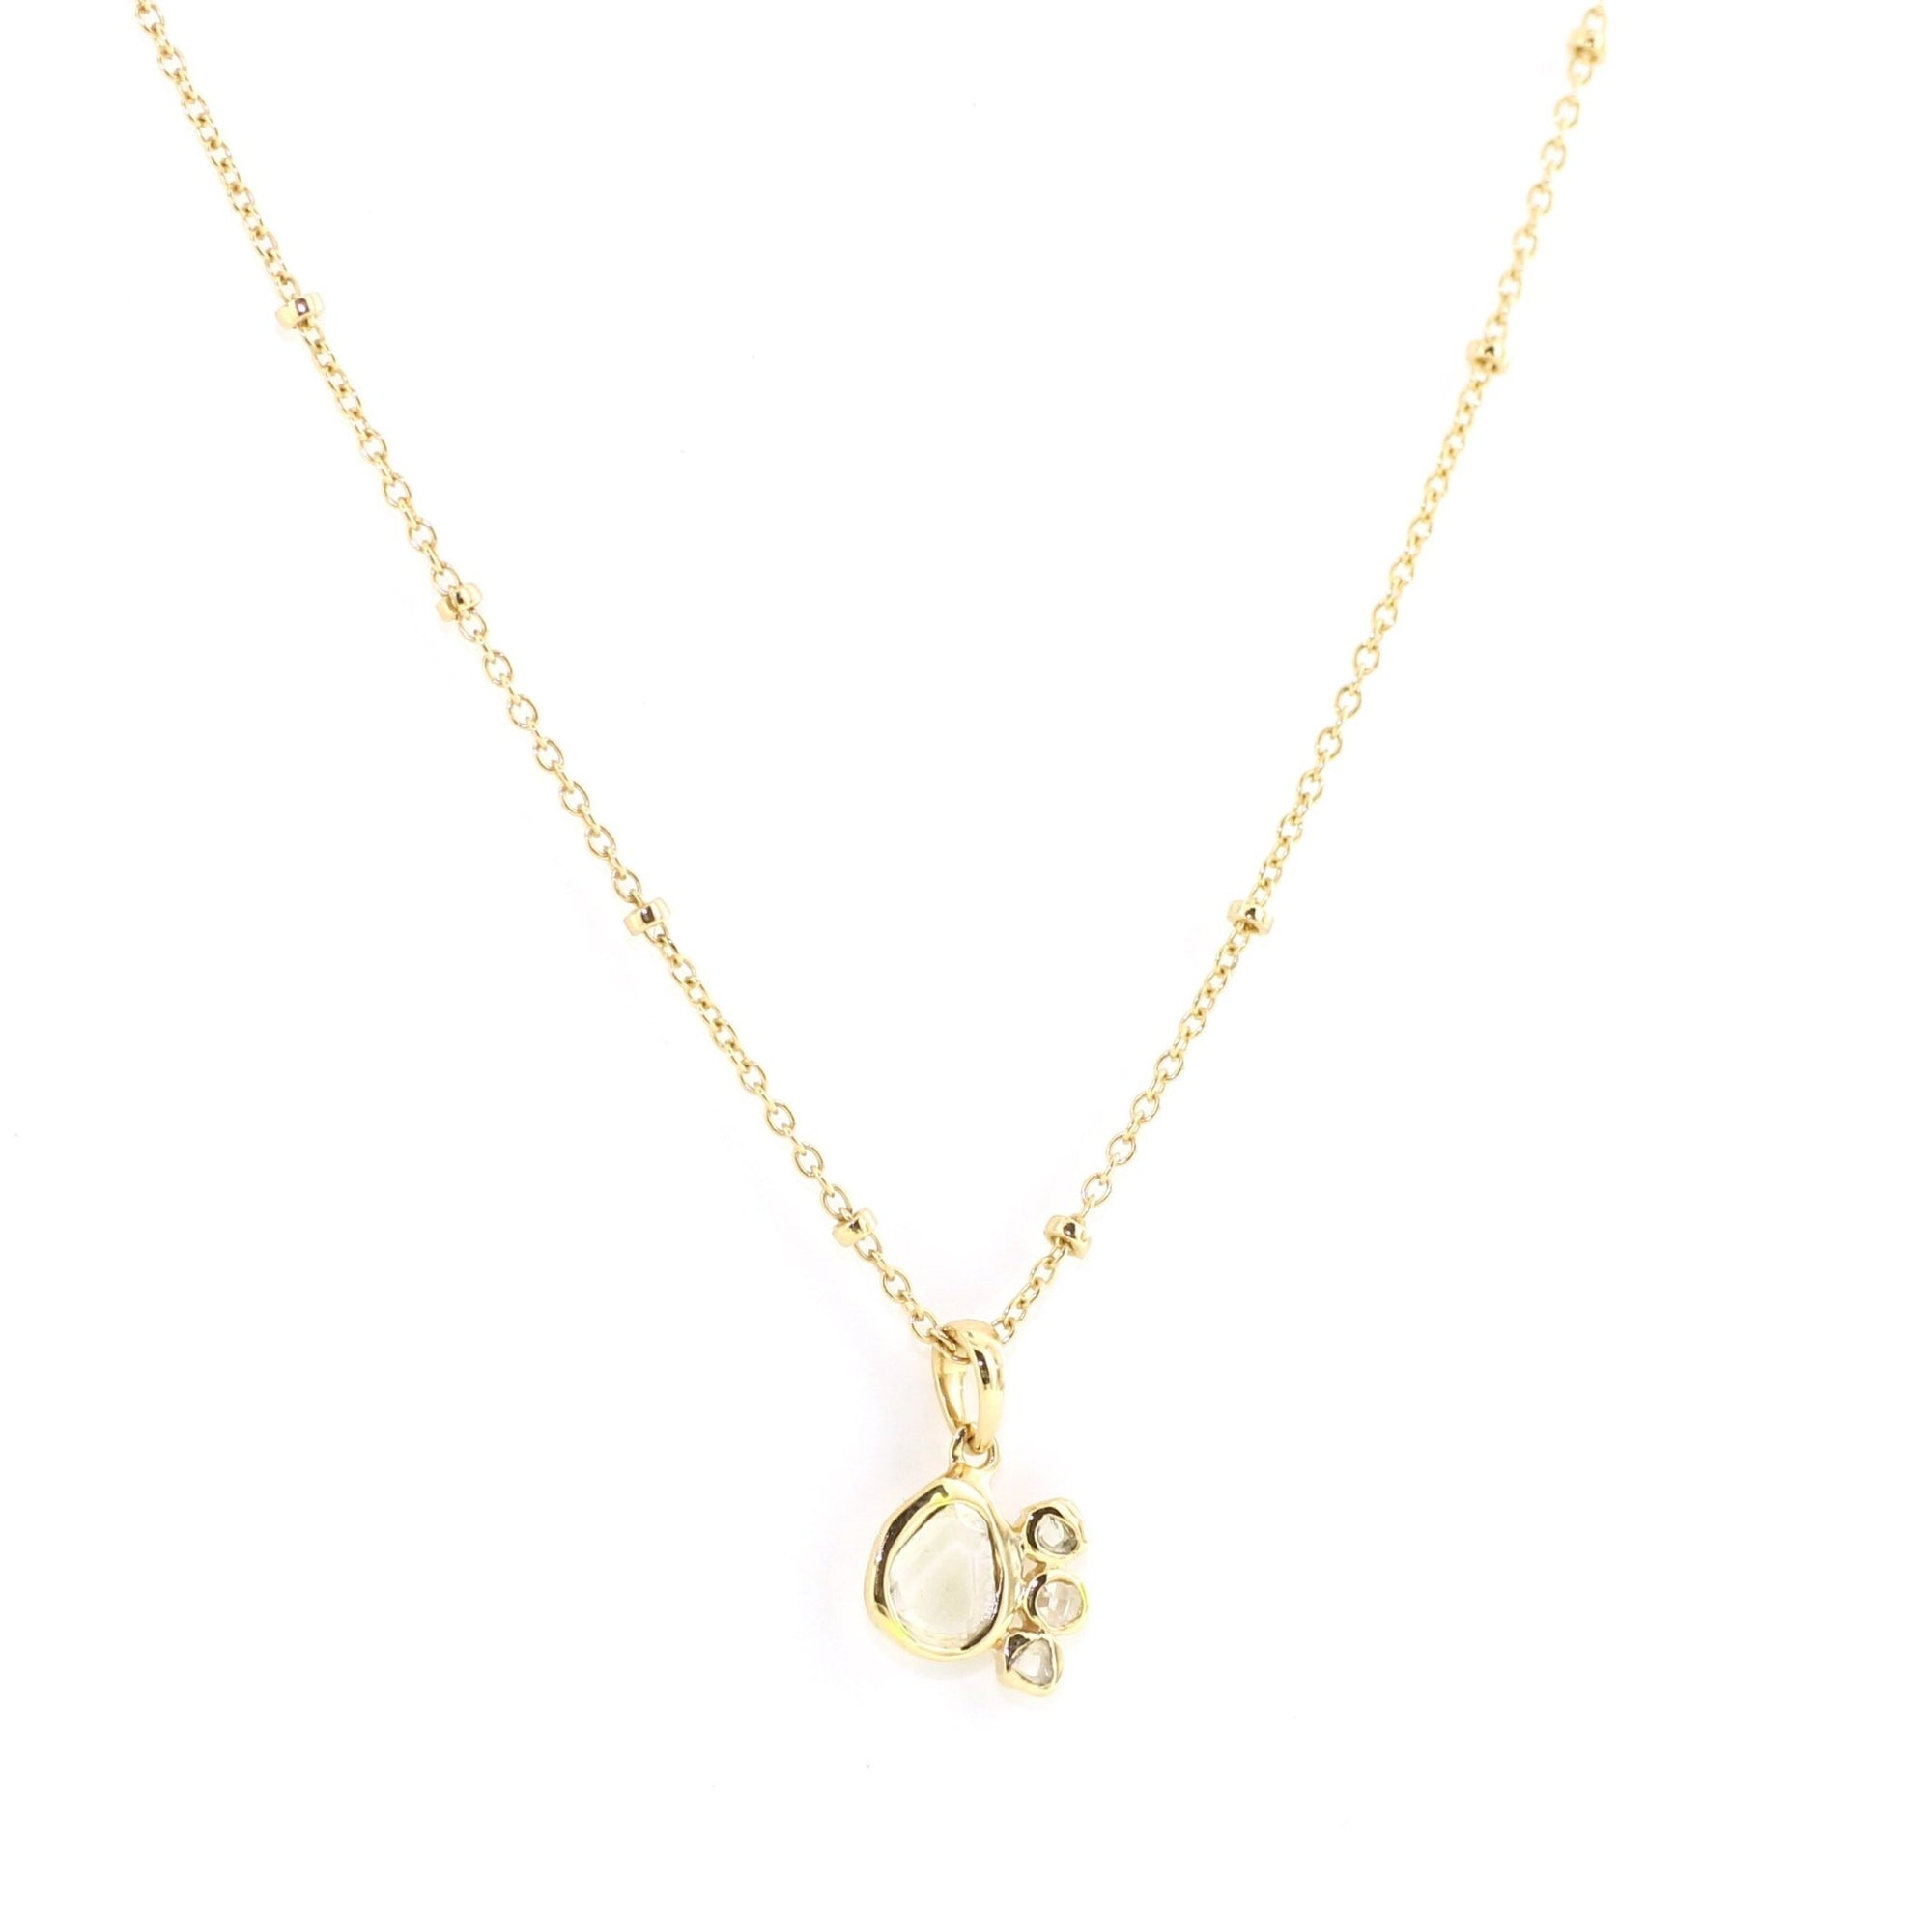 True Sliced Diamond Pendant Necklace Gold - SO PRETTY CARA COTTER